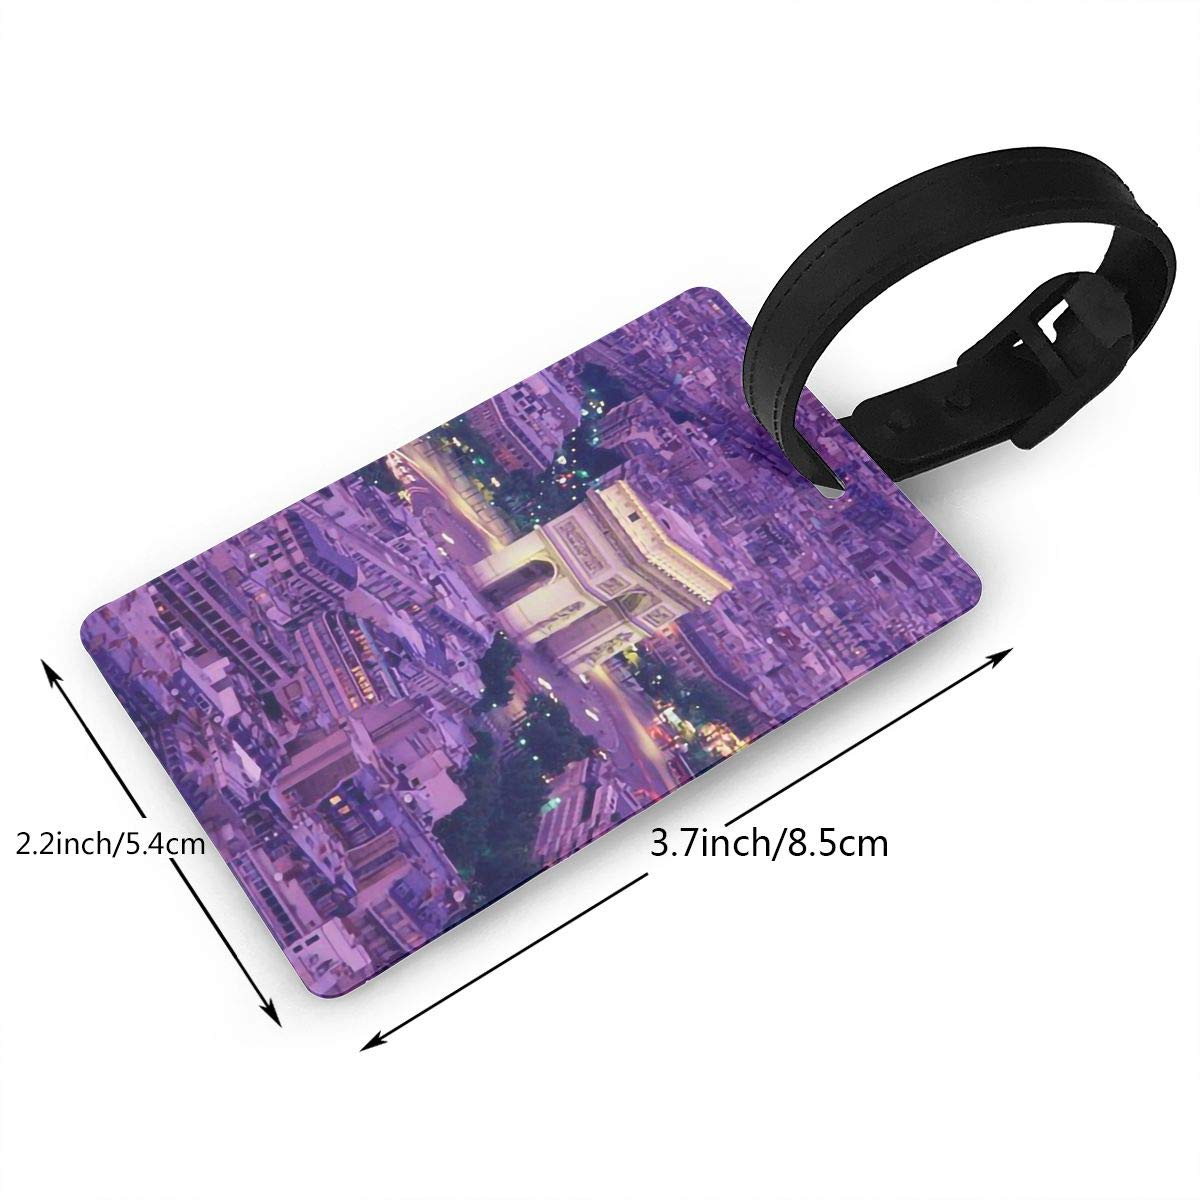 Arc De Triomphe Cruise Luggage Tag For Suitcase Bag Accessories 2 Pack Luggage Tags